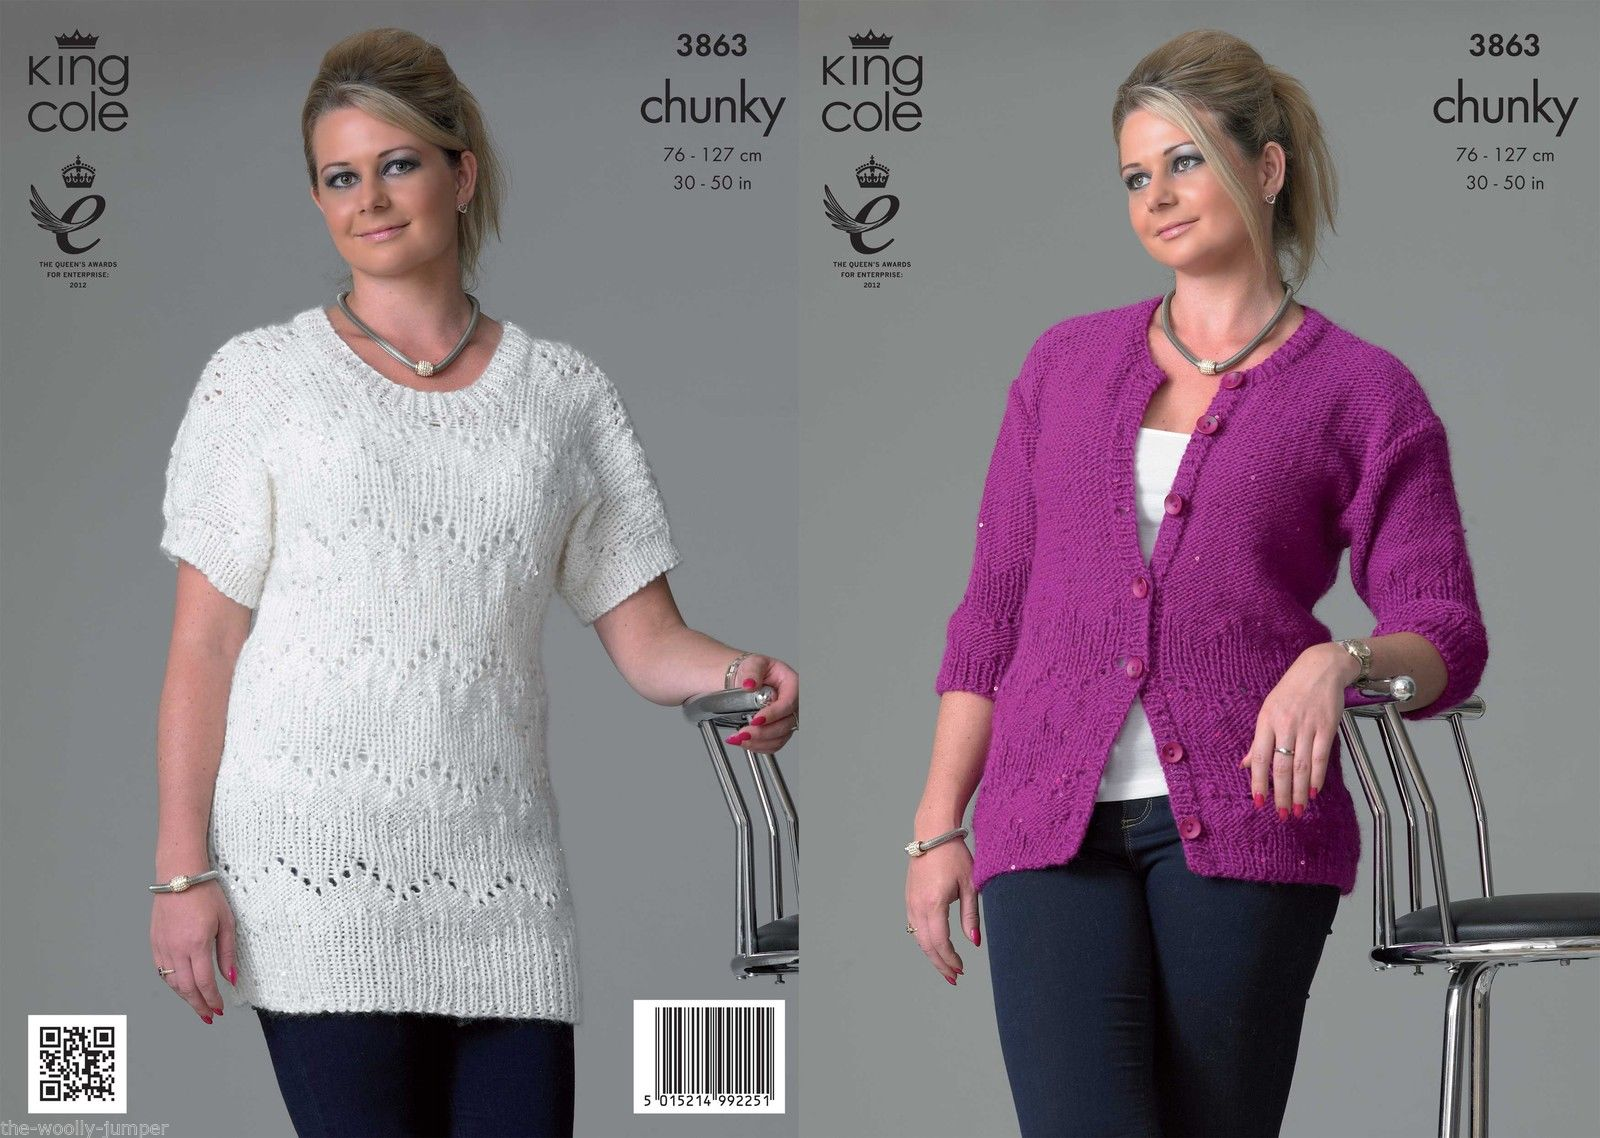 3863 - KING COLE GALAXY CHUNKY TOP & CARDIGAN KNITTING ...